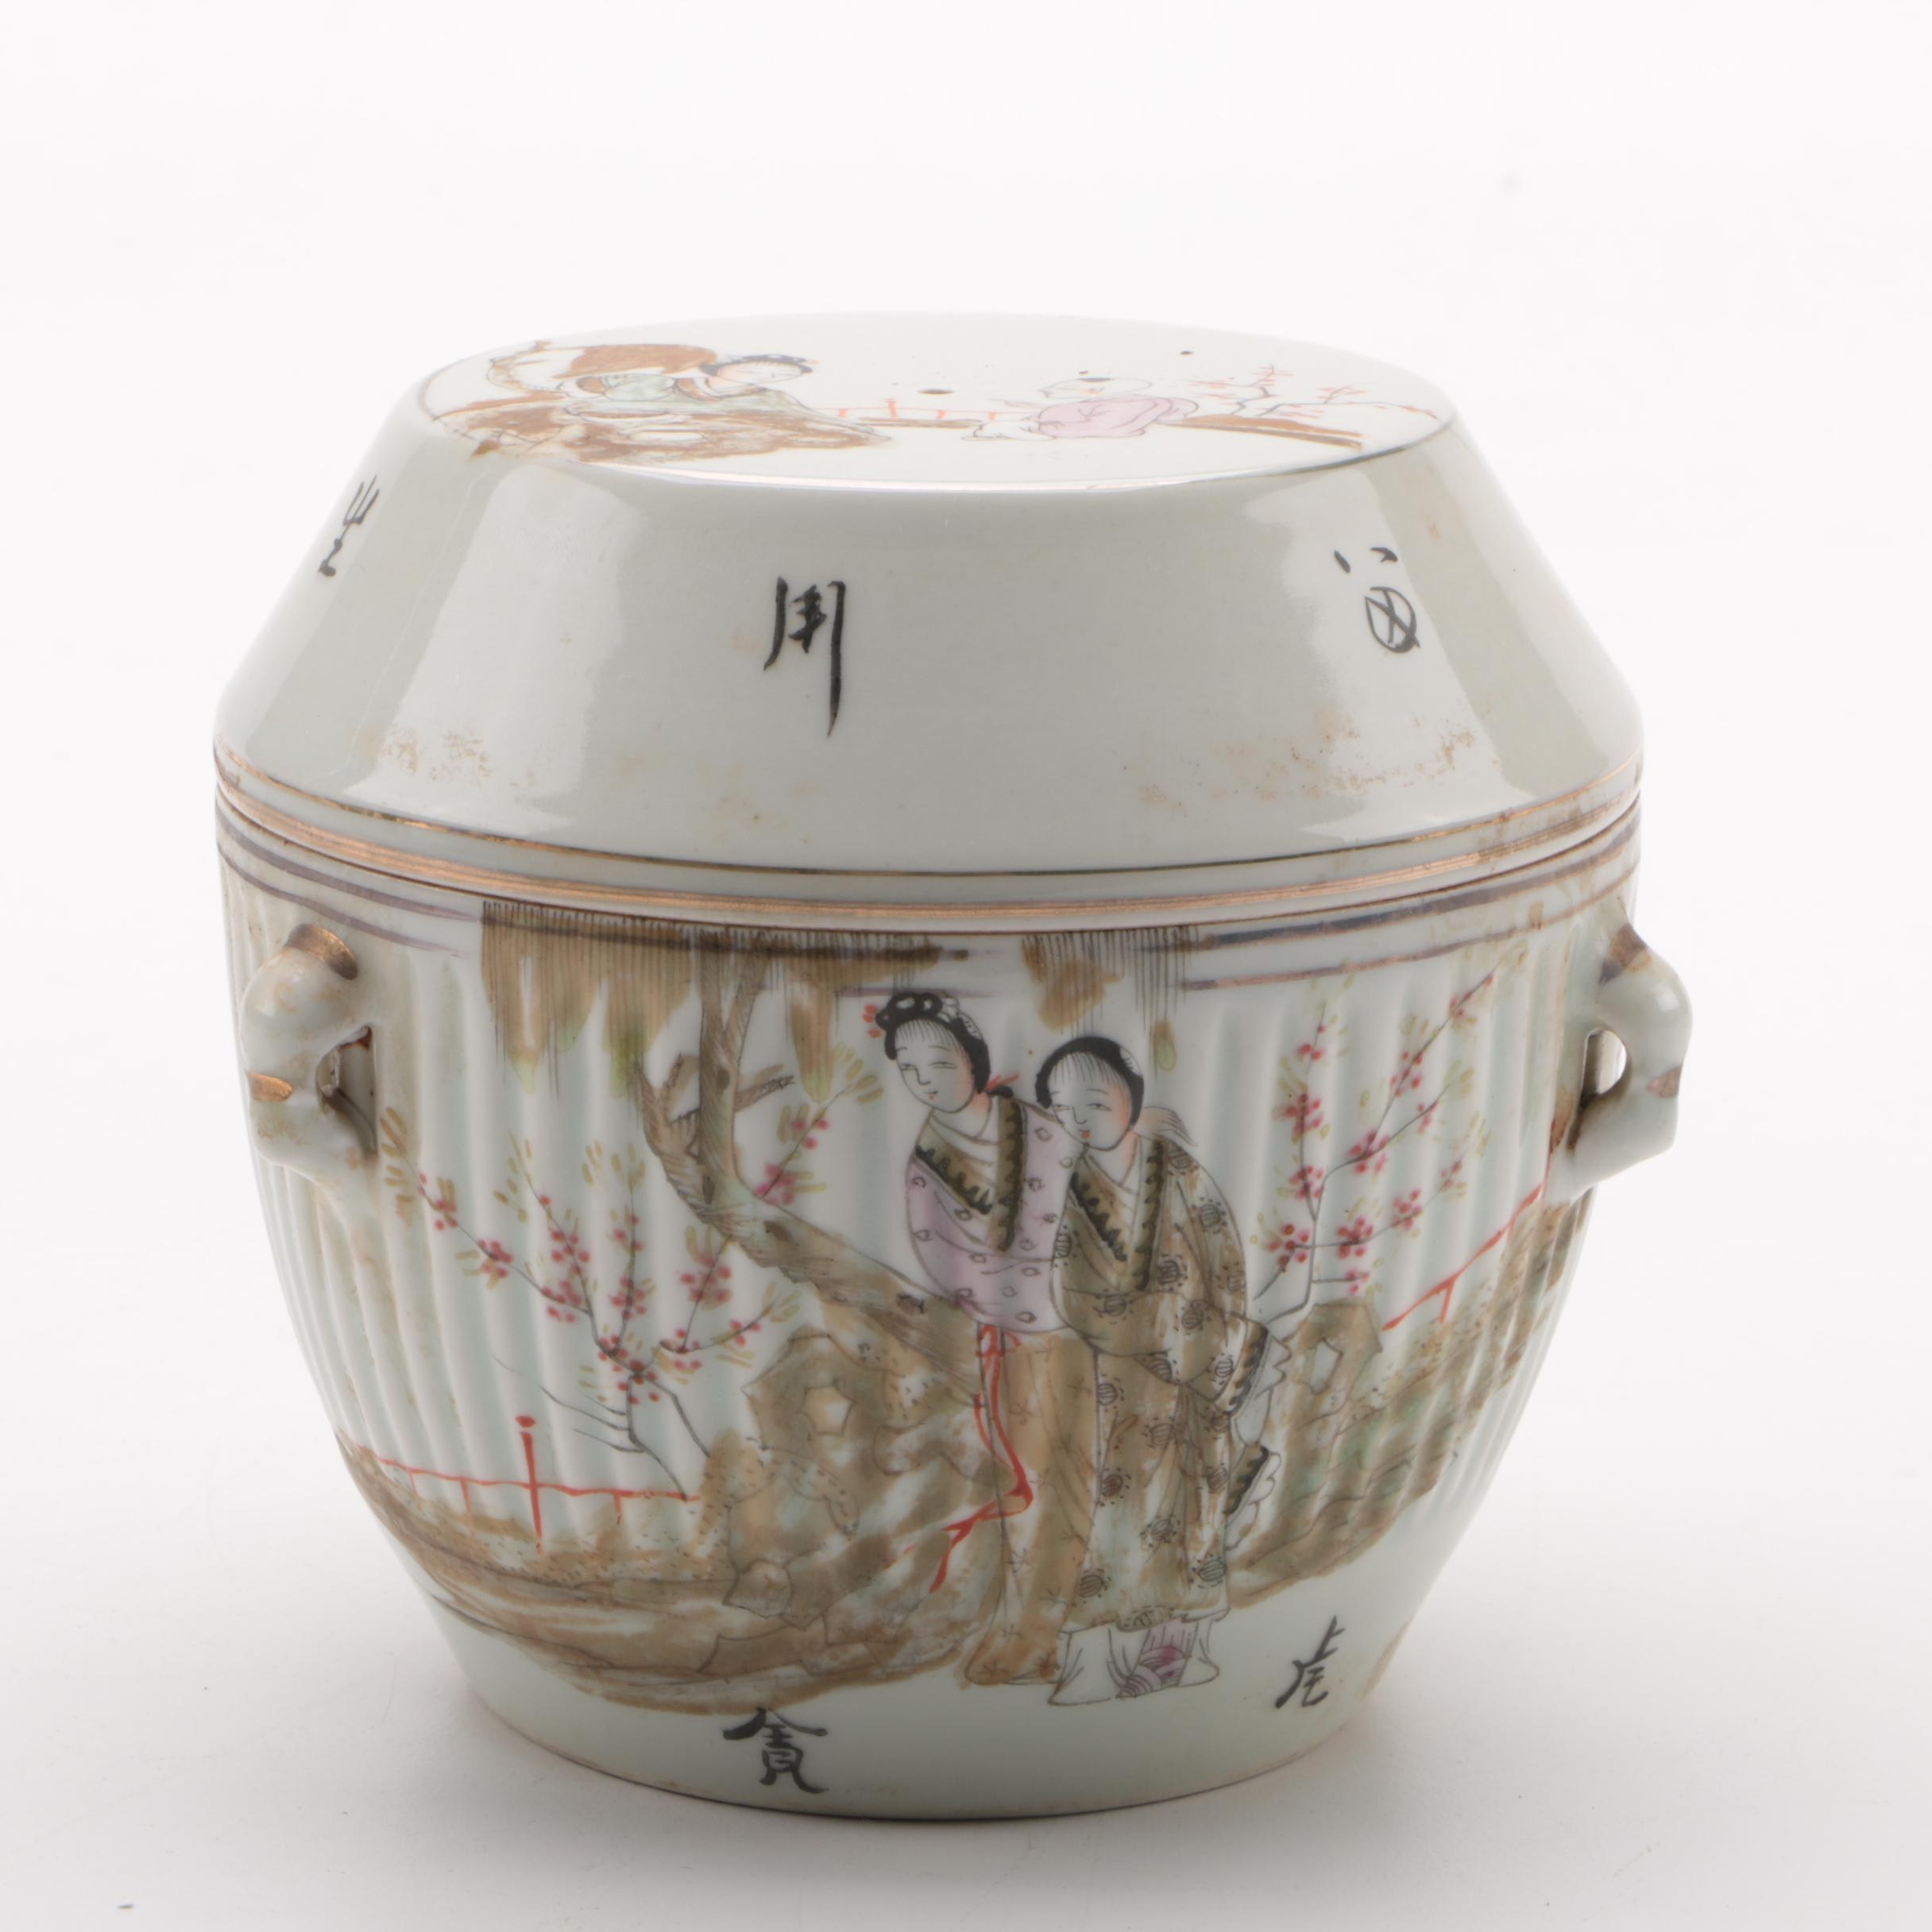 Republic Period Chinese Porcelain Covered Pot